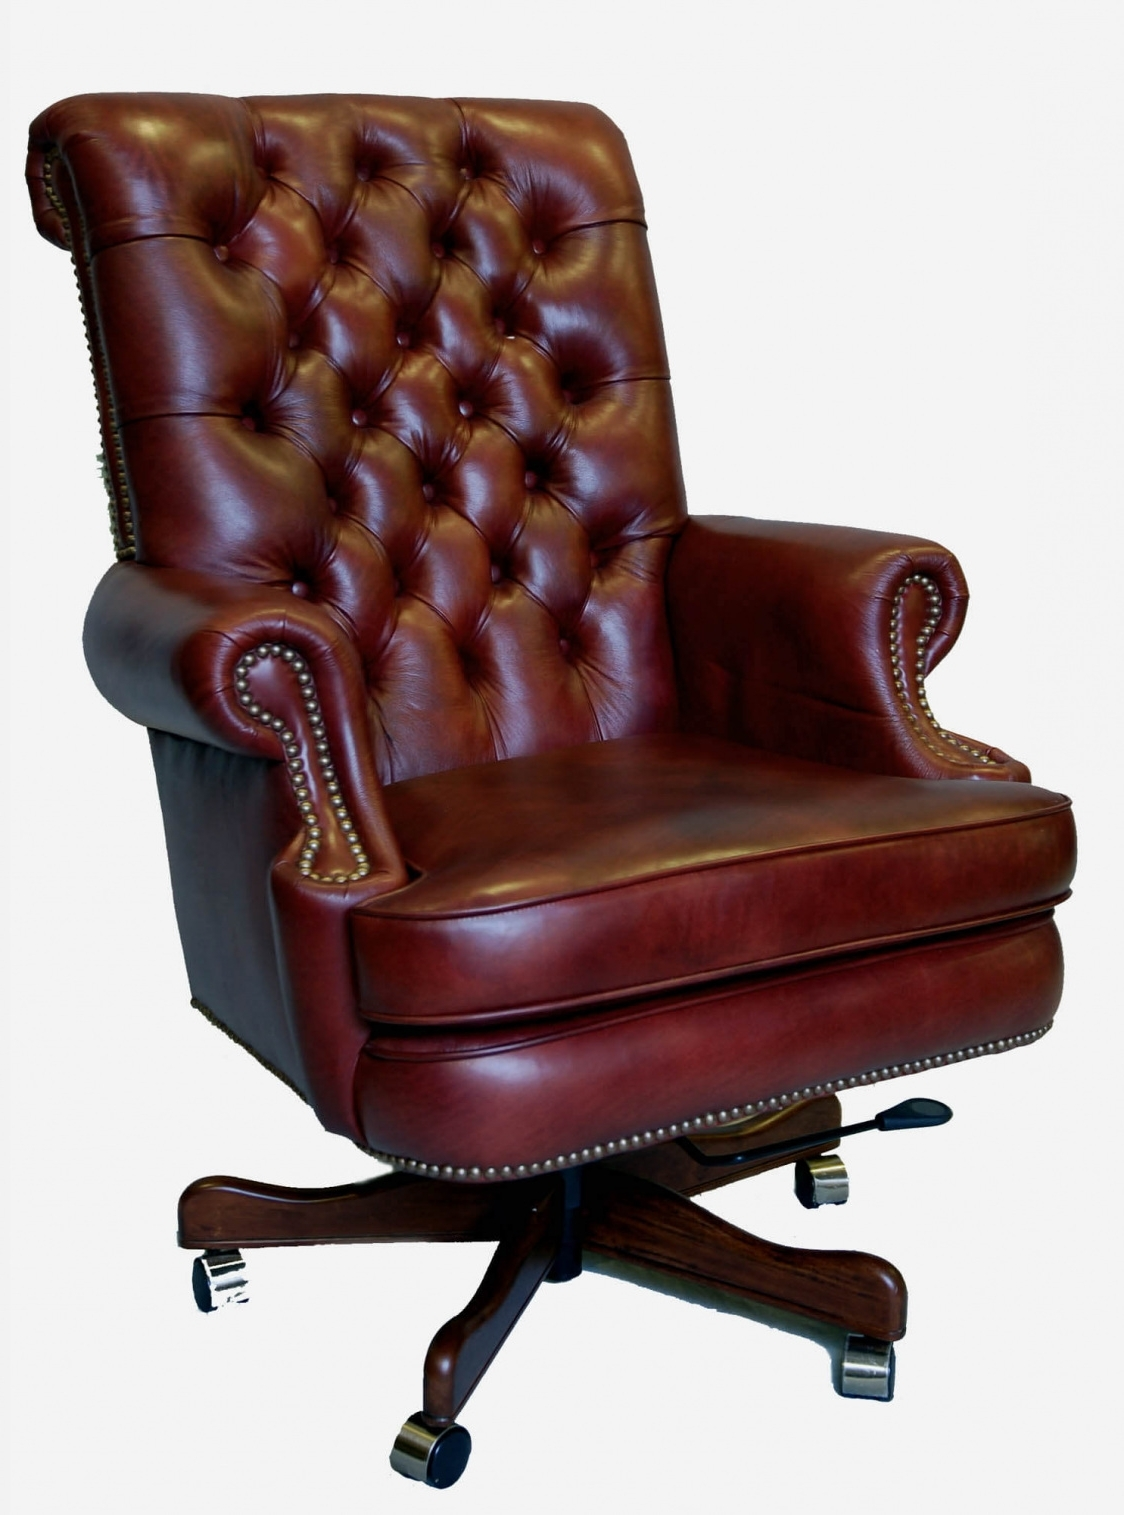 Brown Leather Executive Office Chairs Regarding Current Brown Leather Executive Office Chair – Space Saving Desk Ideas (View 6 of 20)